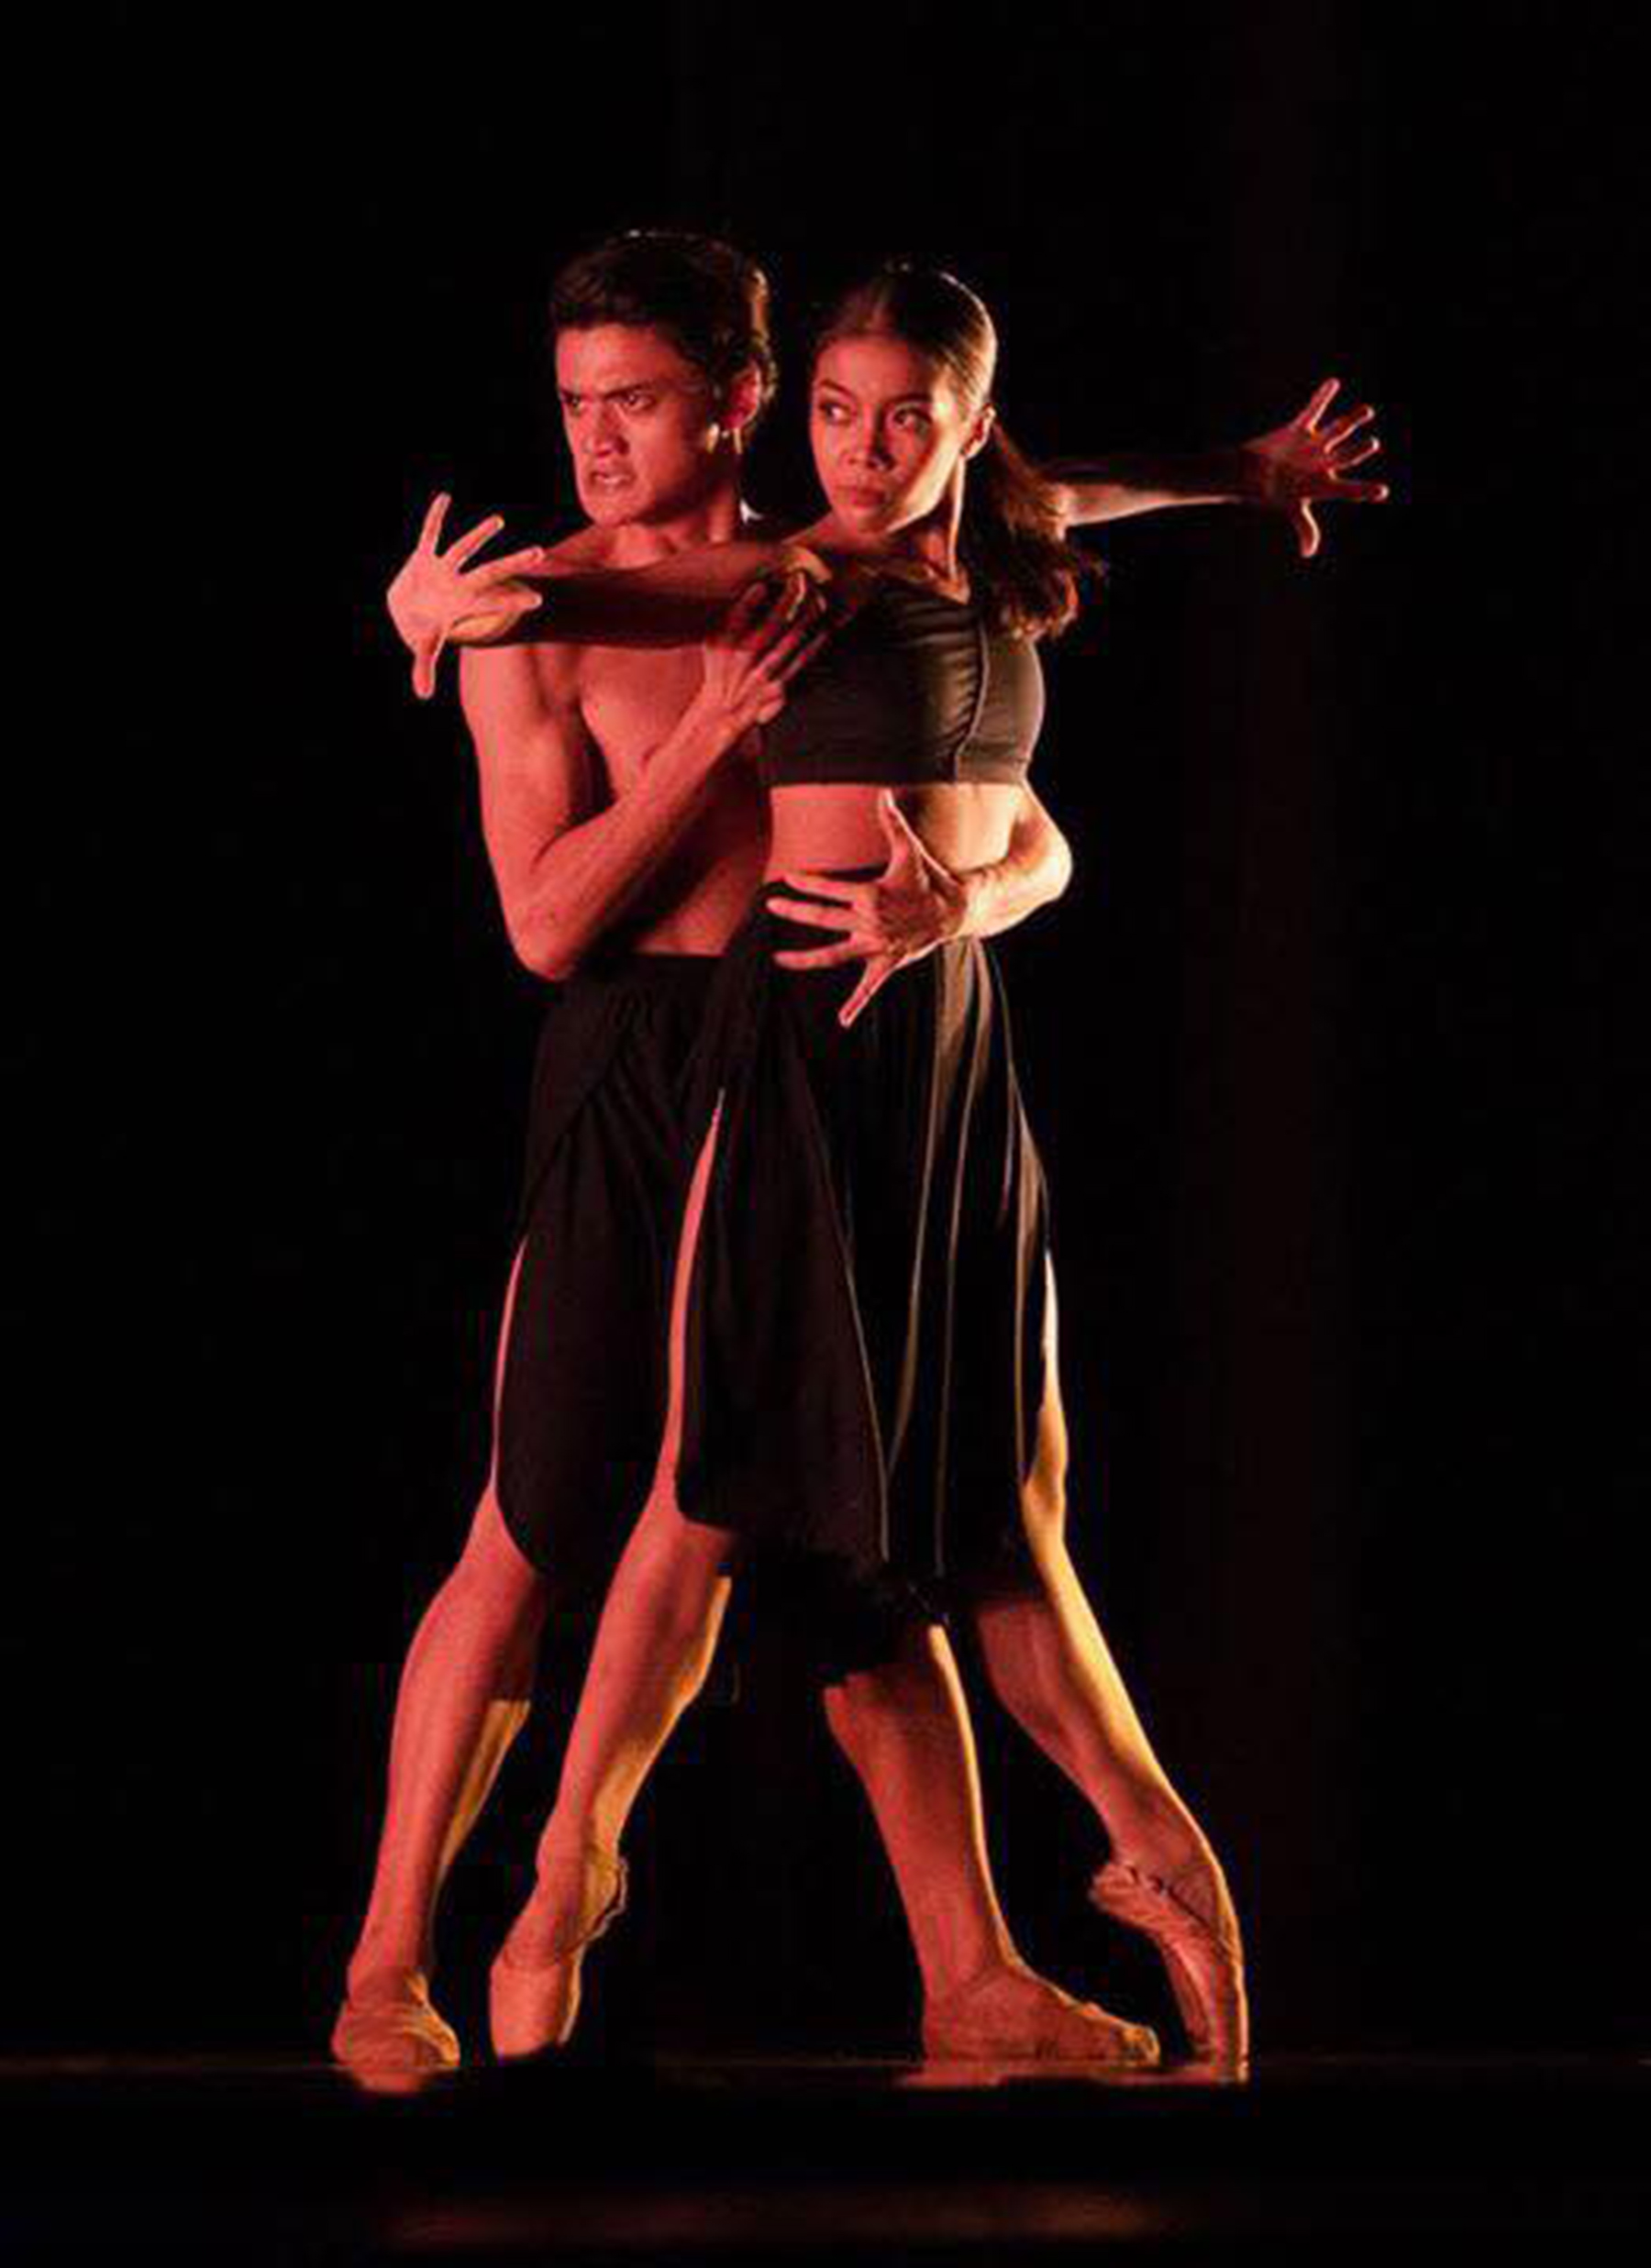 Nicole says she and Joshua just put their hearts into the performance, to give justice to the choreography. Photo by Richard Finkelstein, courtesy of USA IBC